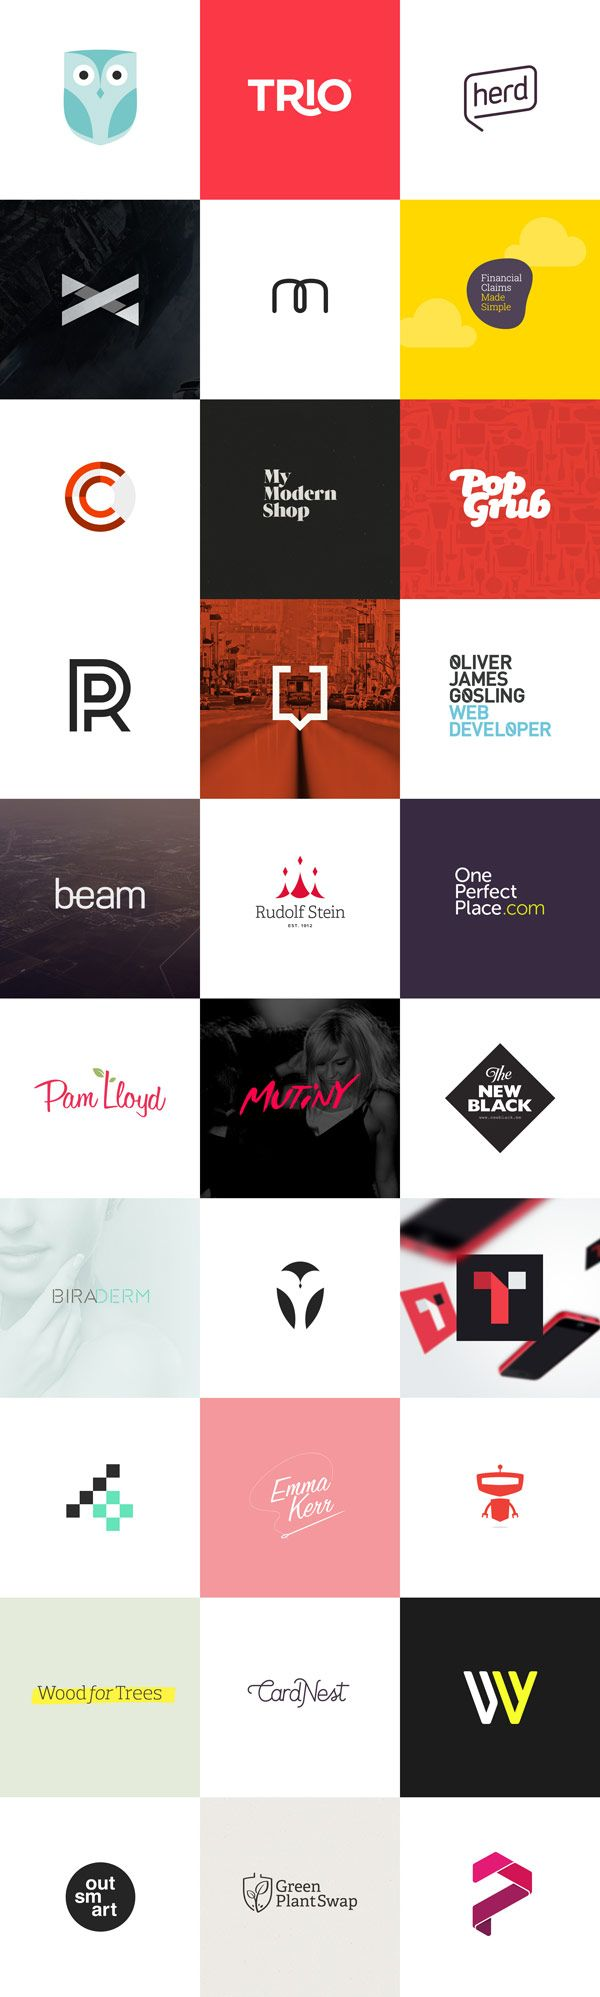 30 Logos by Hype & Slippers #logos